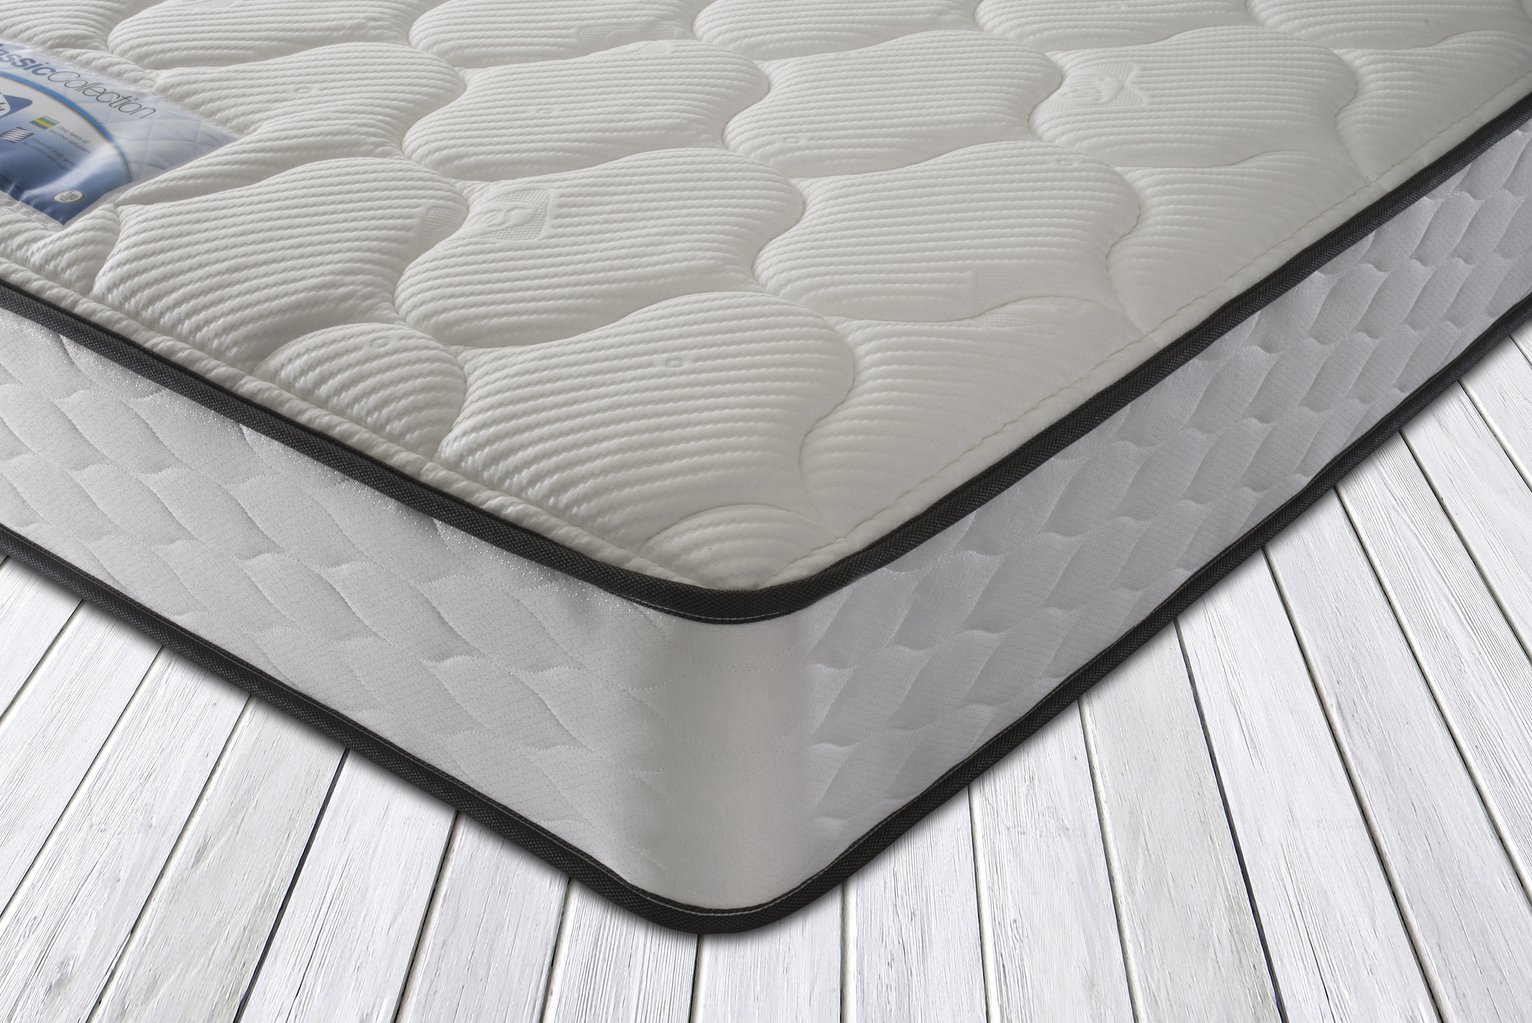 Sealy - 1400 Pocket Micro Quilt Mattress - Double at Argos